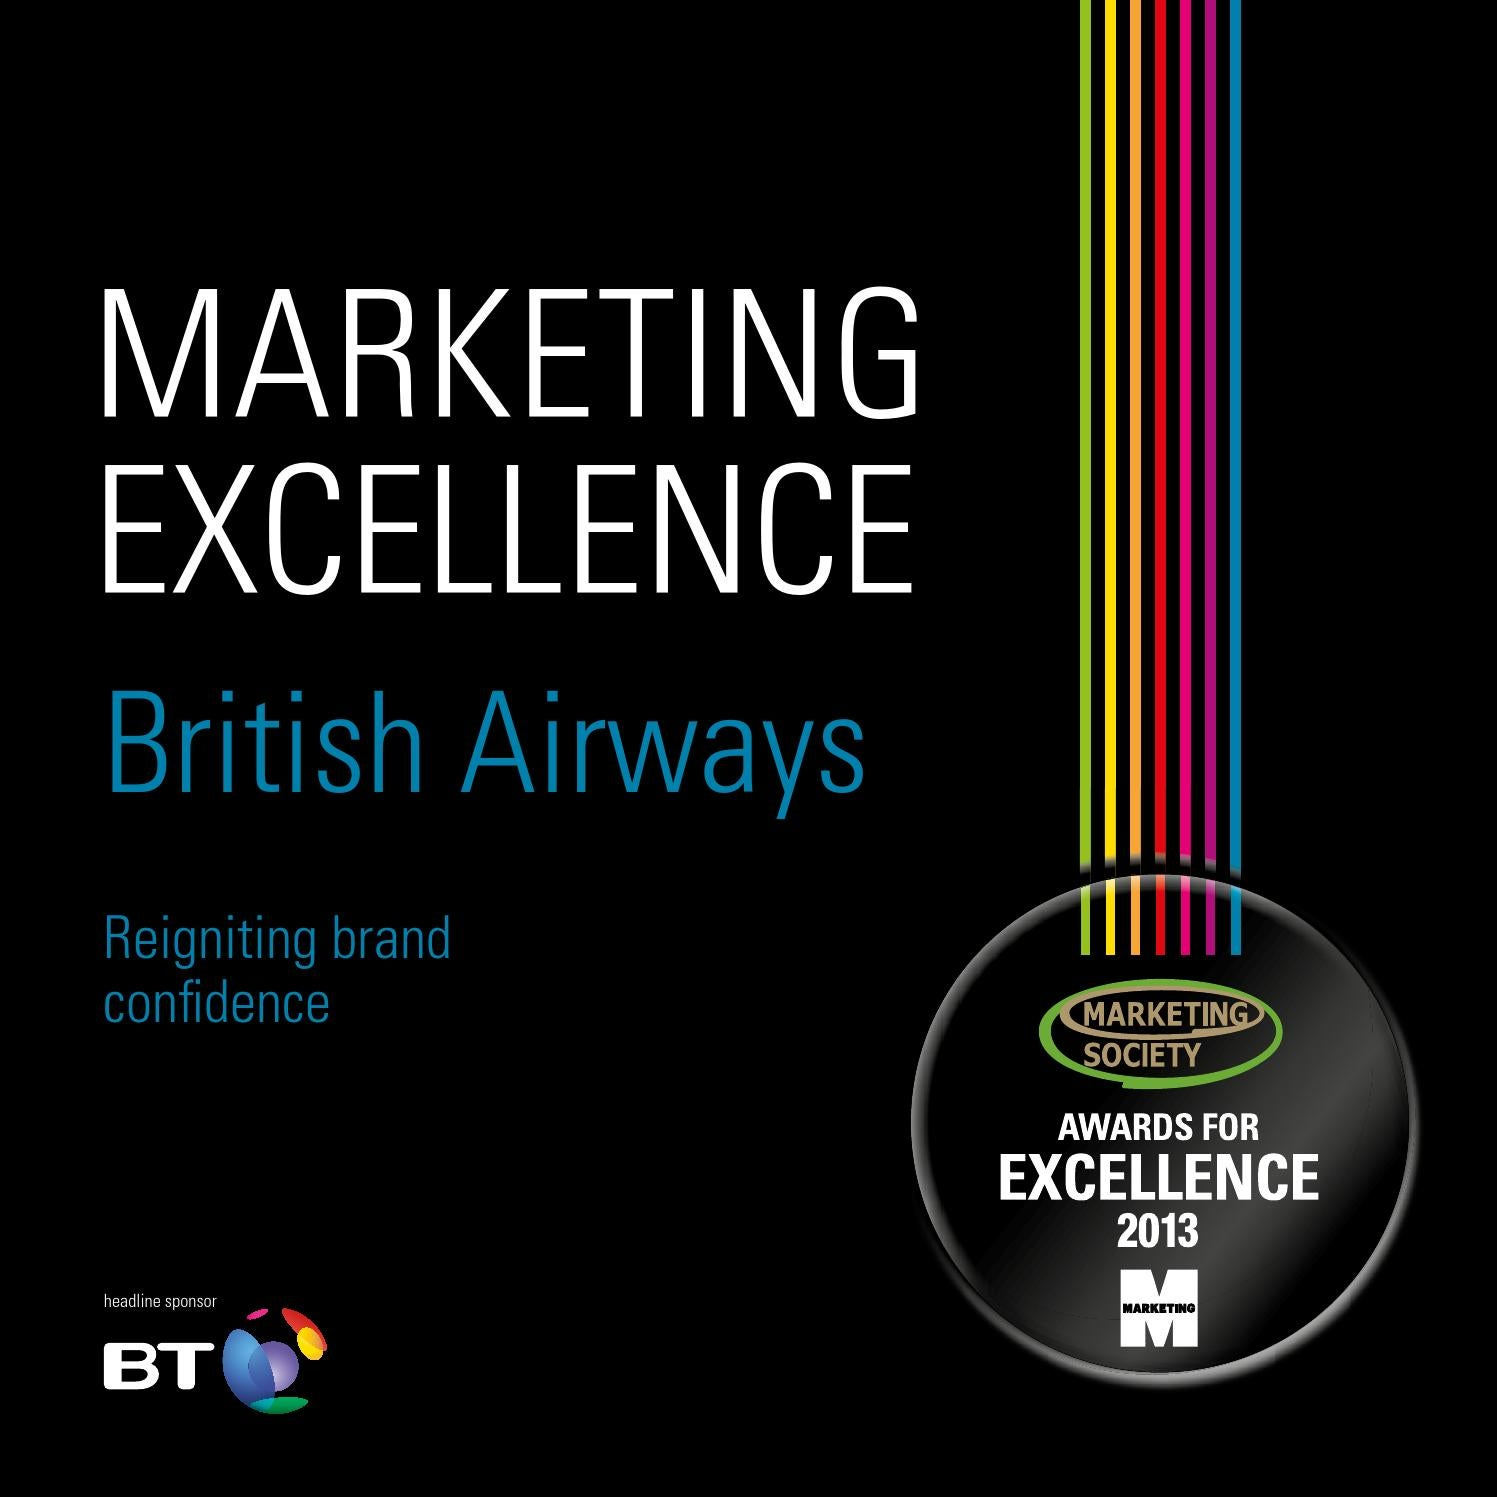 marketing orientation british airways In conclusion, british airways is a complex organization and the traditions and practices of product/service orientation, which was fostered by the monopolistic practices of a regulated industry, are not easily overcome.